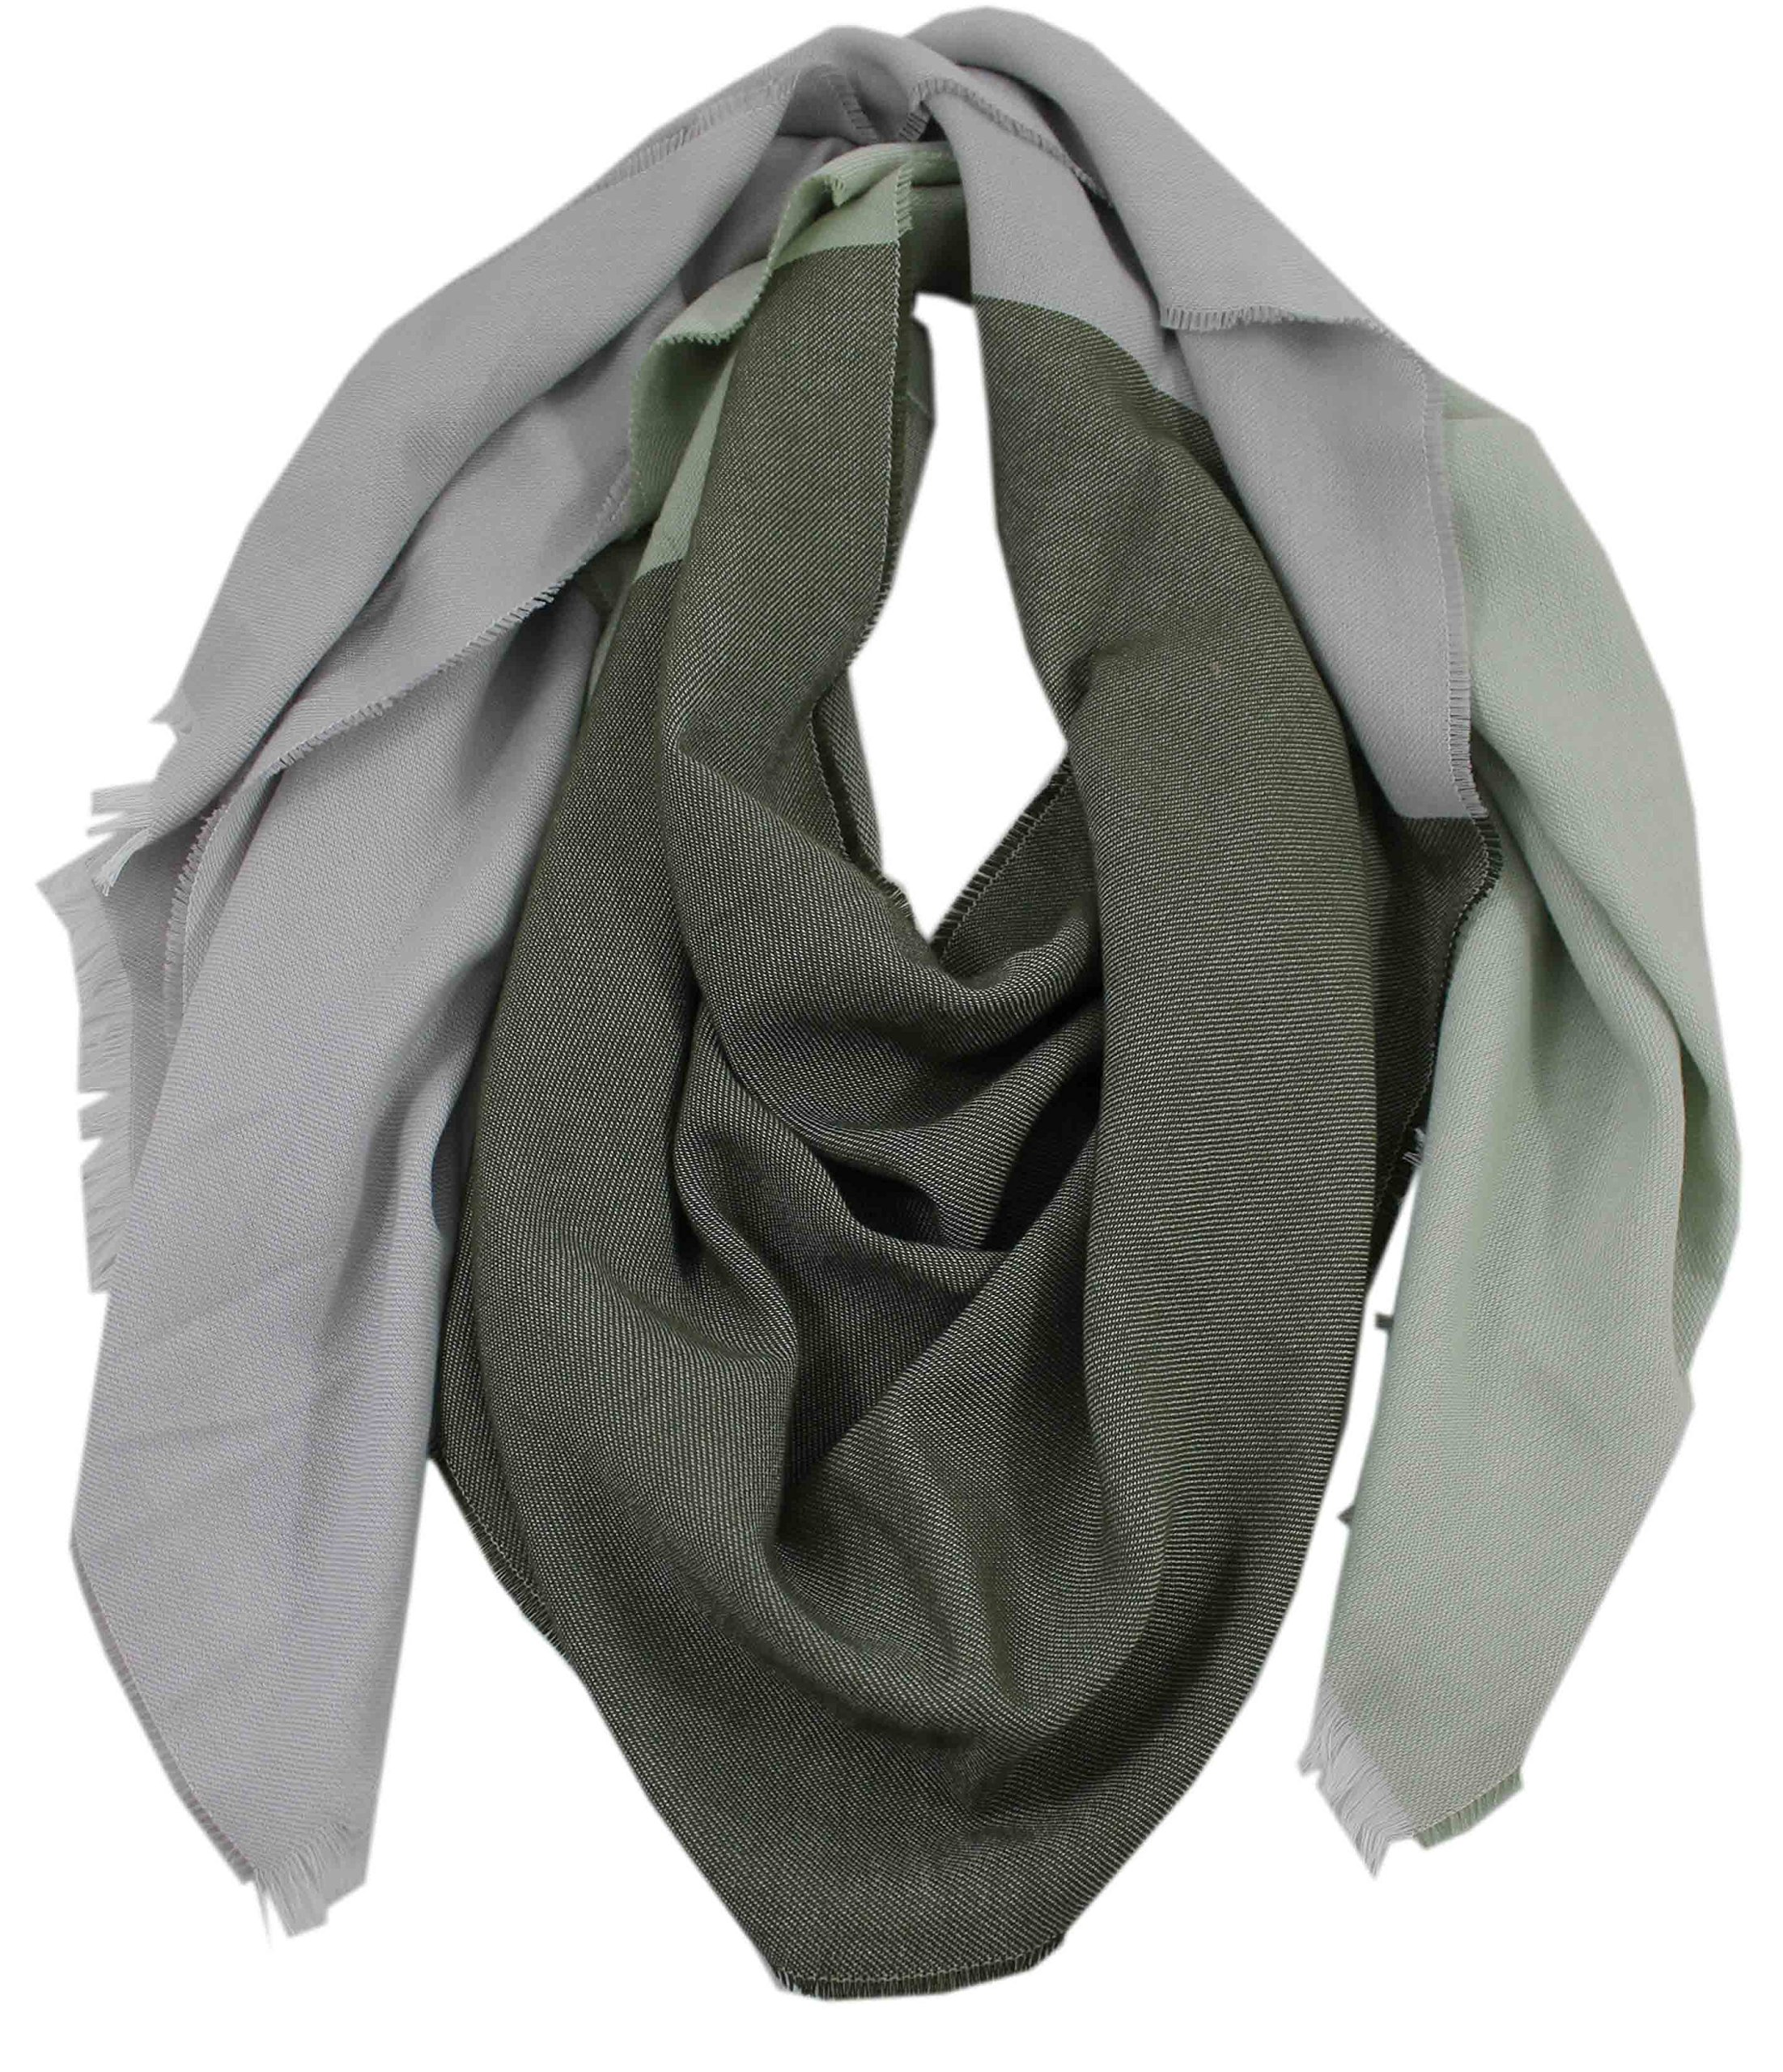 Scarf Summer Scarf Web Scarf Stripe & Two Tone Look- Gray Green 100% Cotton